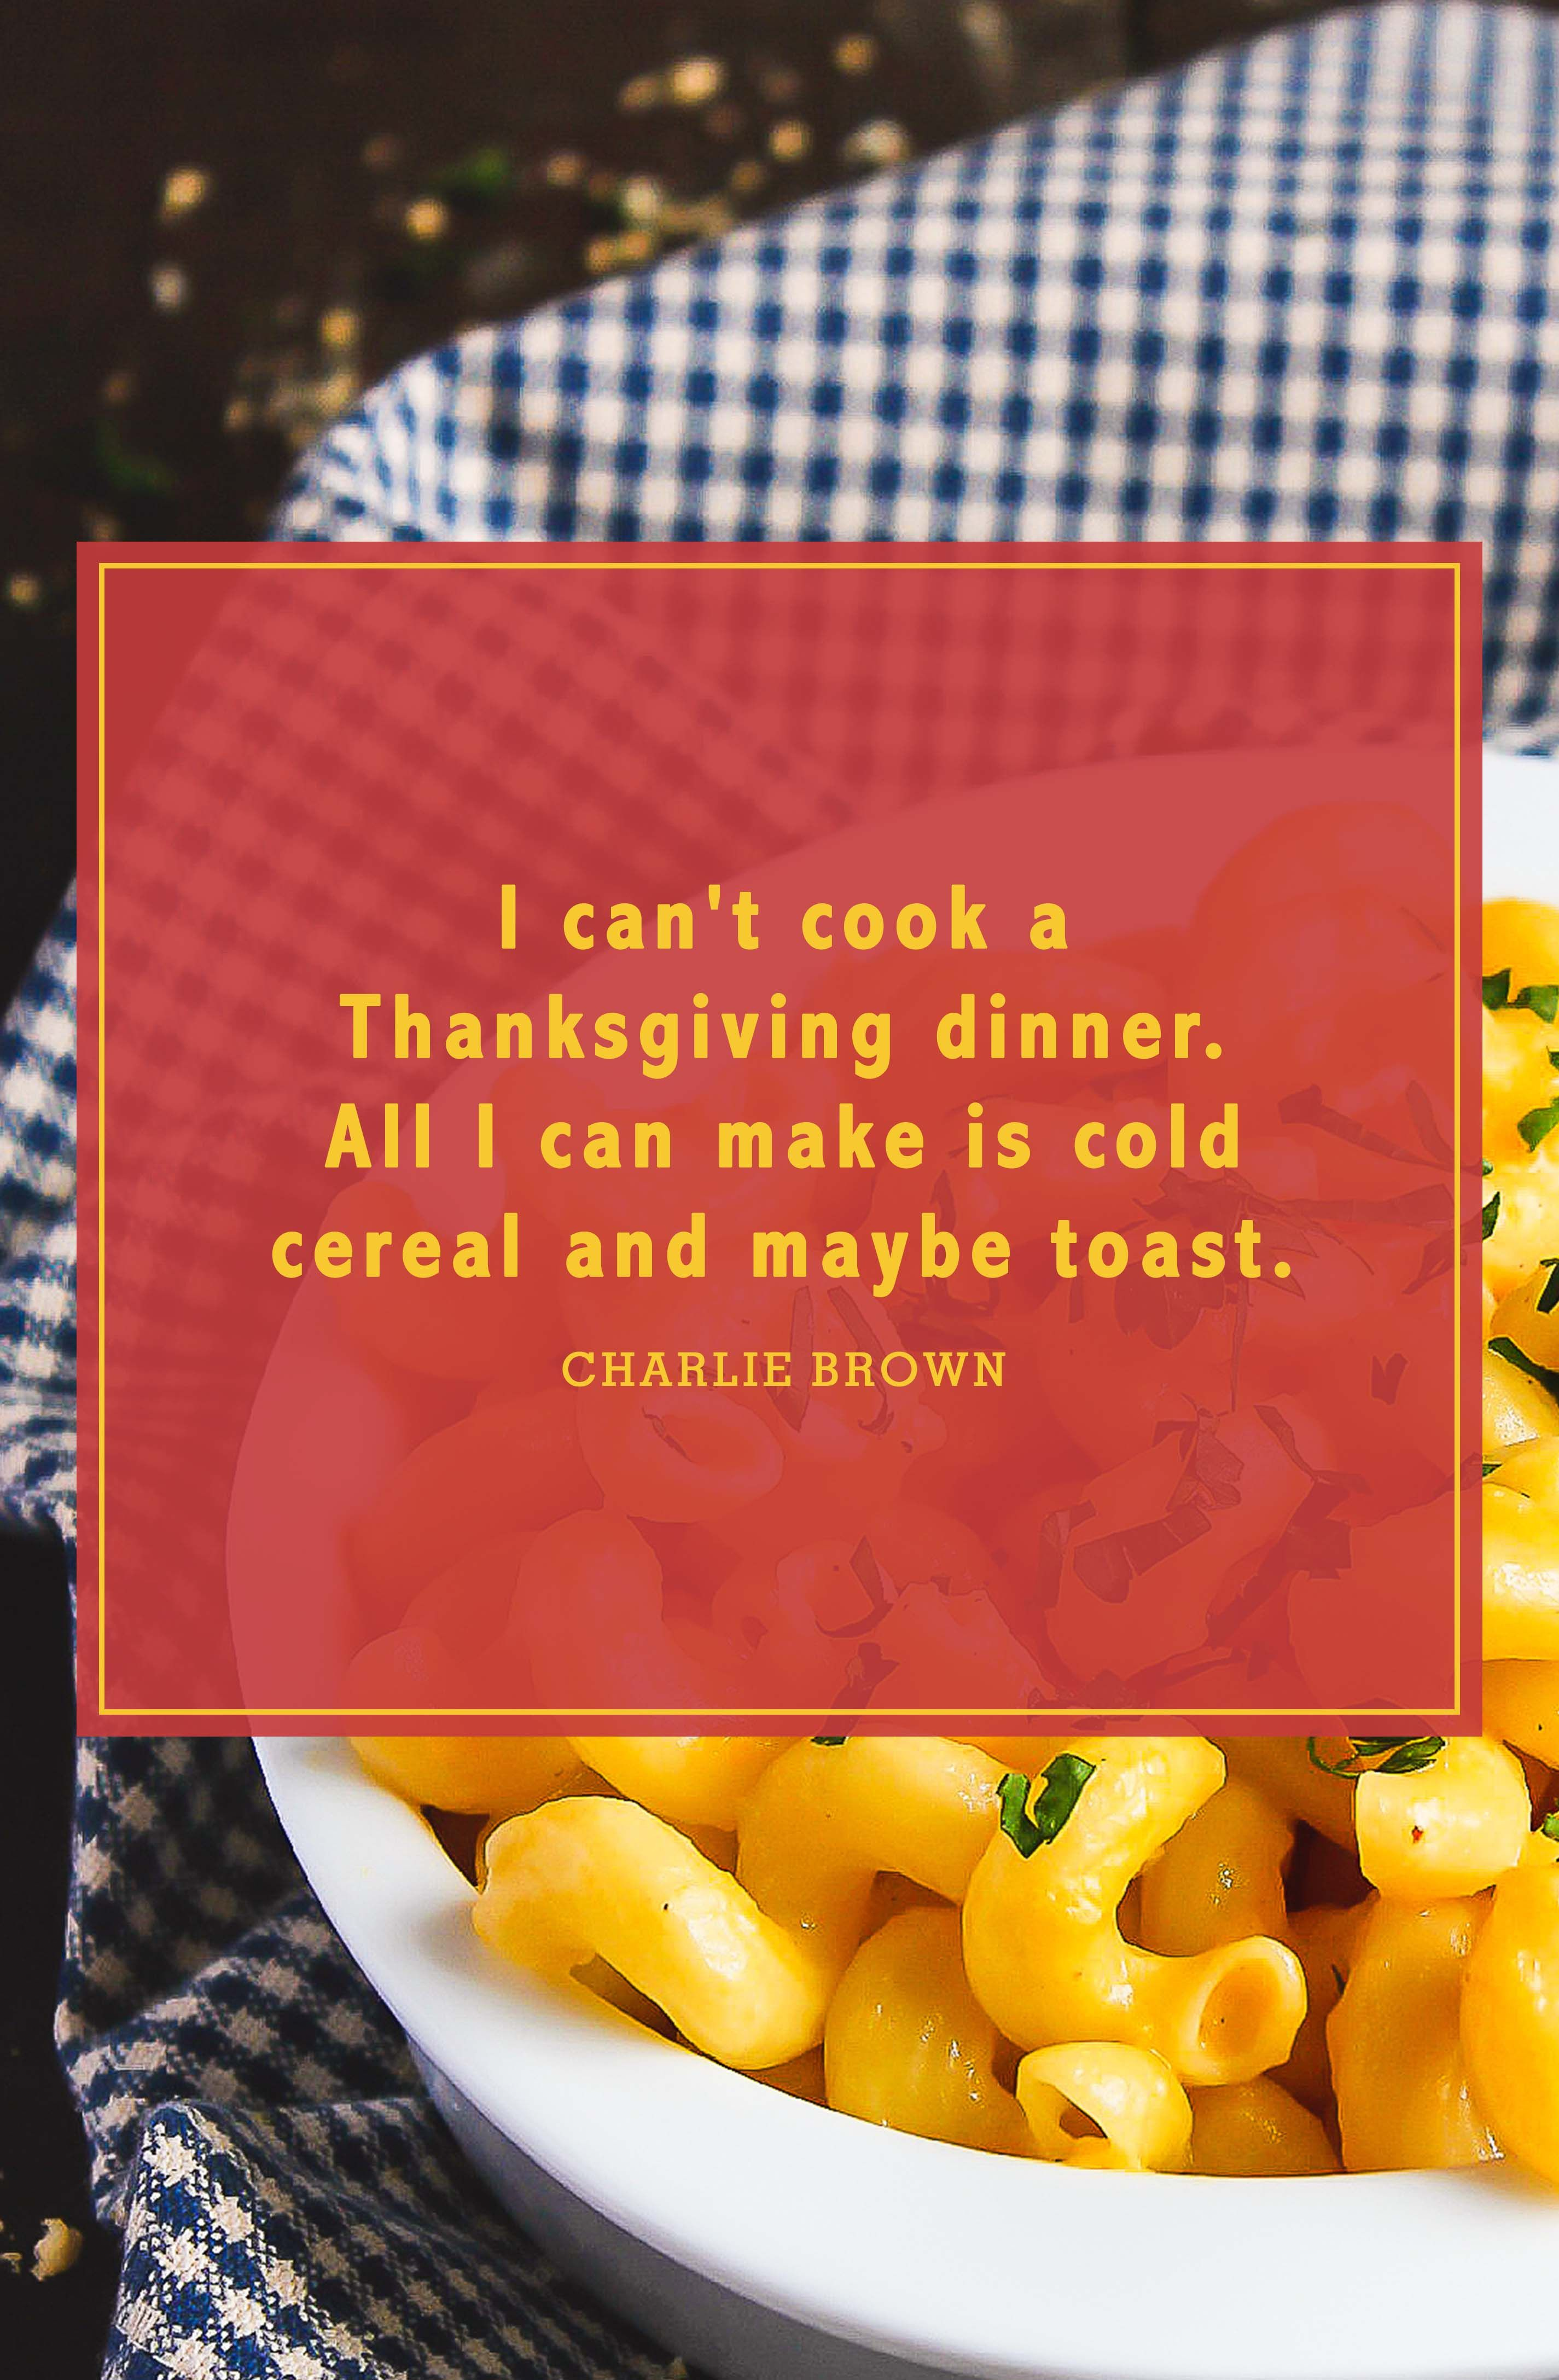 funny thanksgiving quotes charlie brown